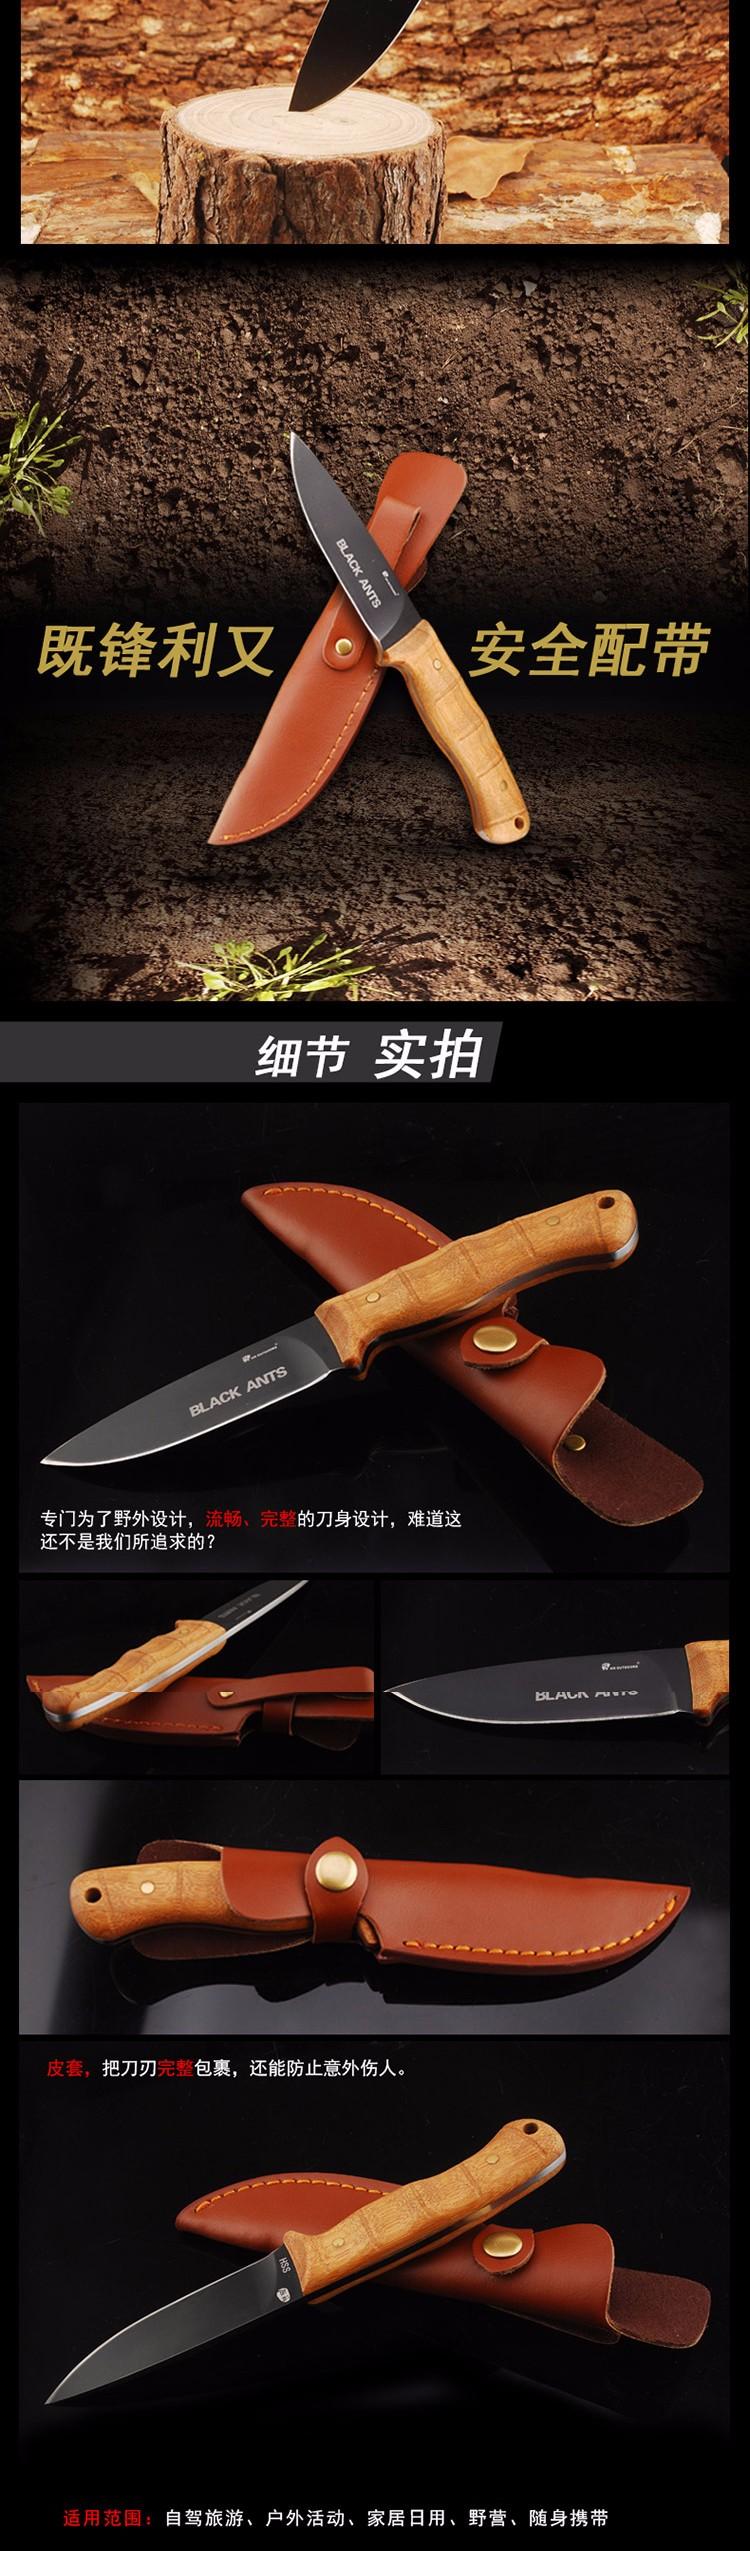 Buy HX OUTDOORS A tactical outdoor high hardness survival knife self-defense tool portable outdoor knife knife cheap